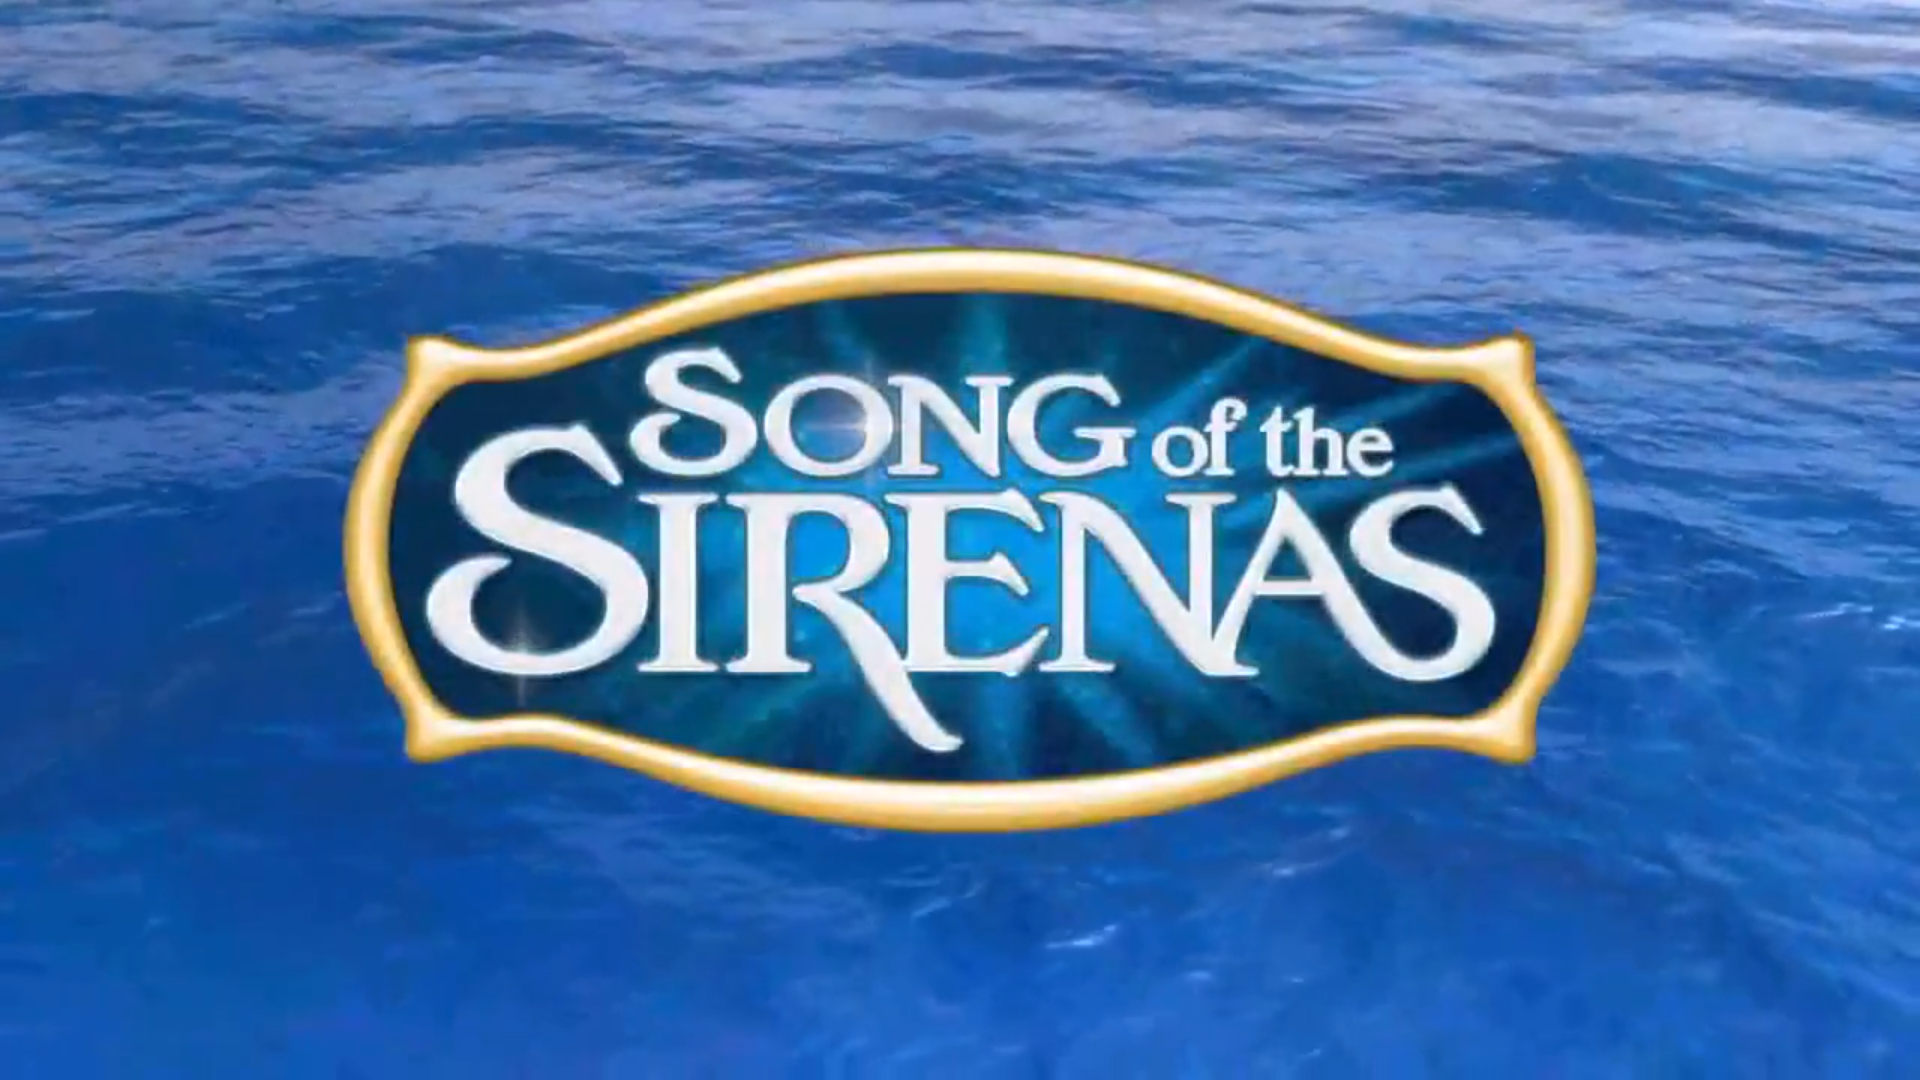 Song of the Sirenas